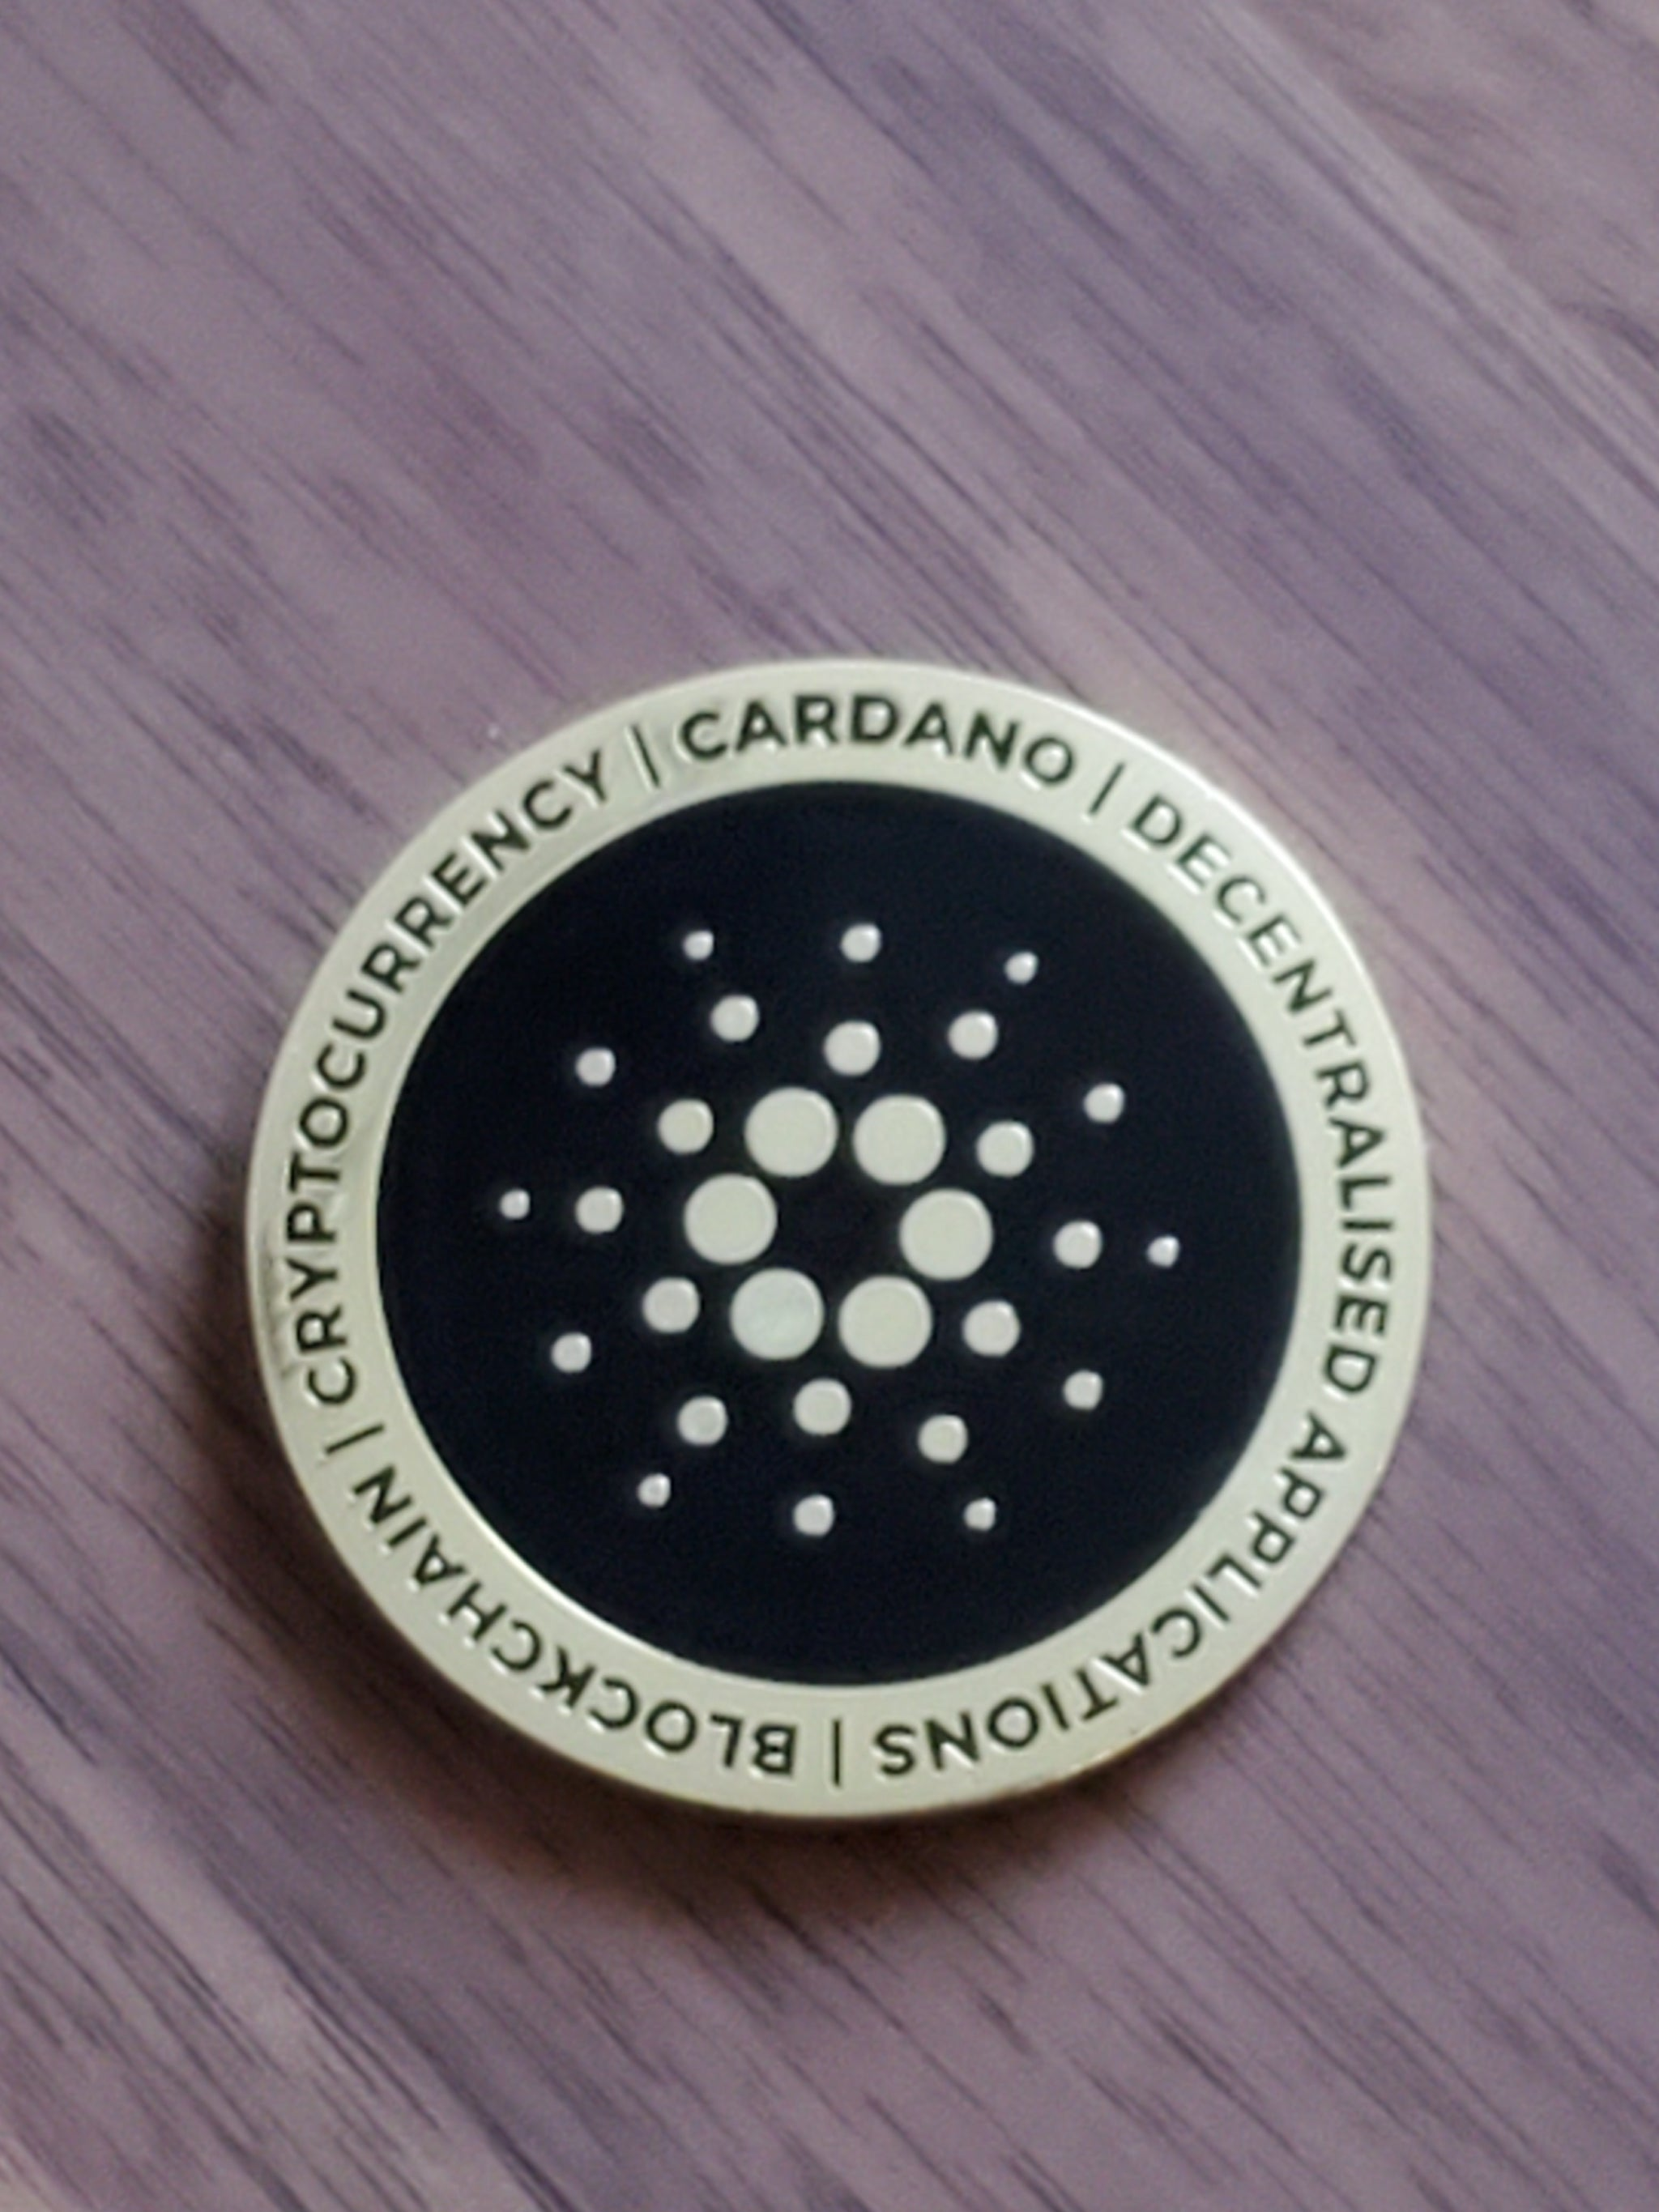 Limited Edition Cardano Coin